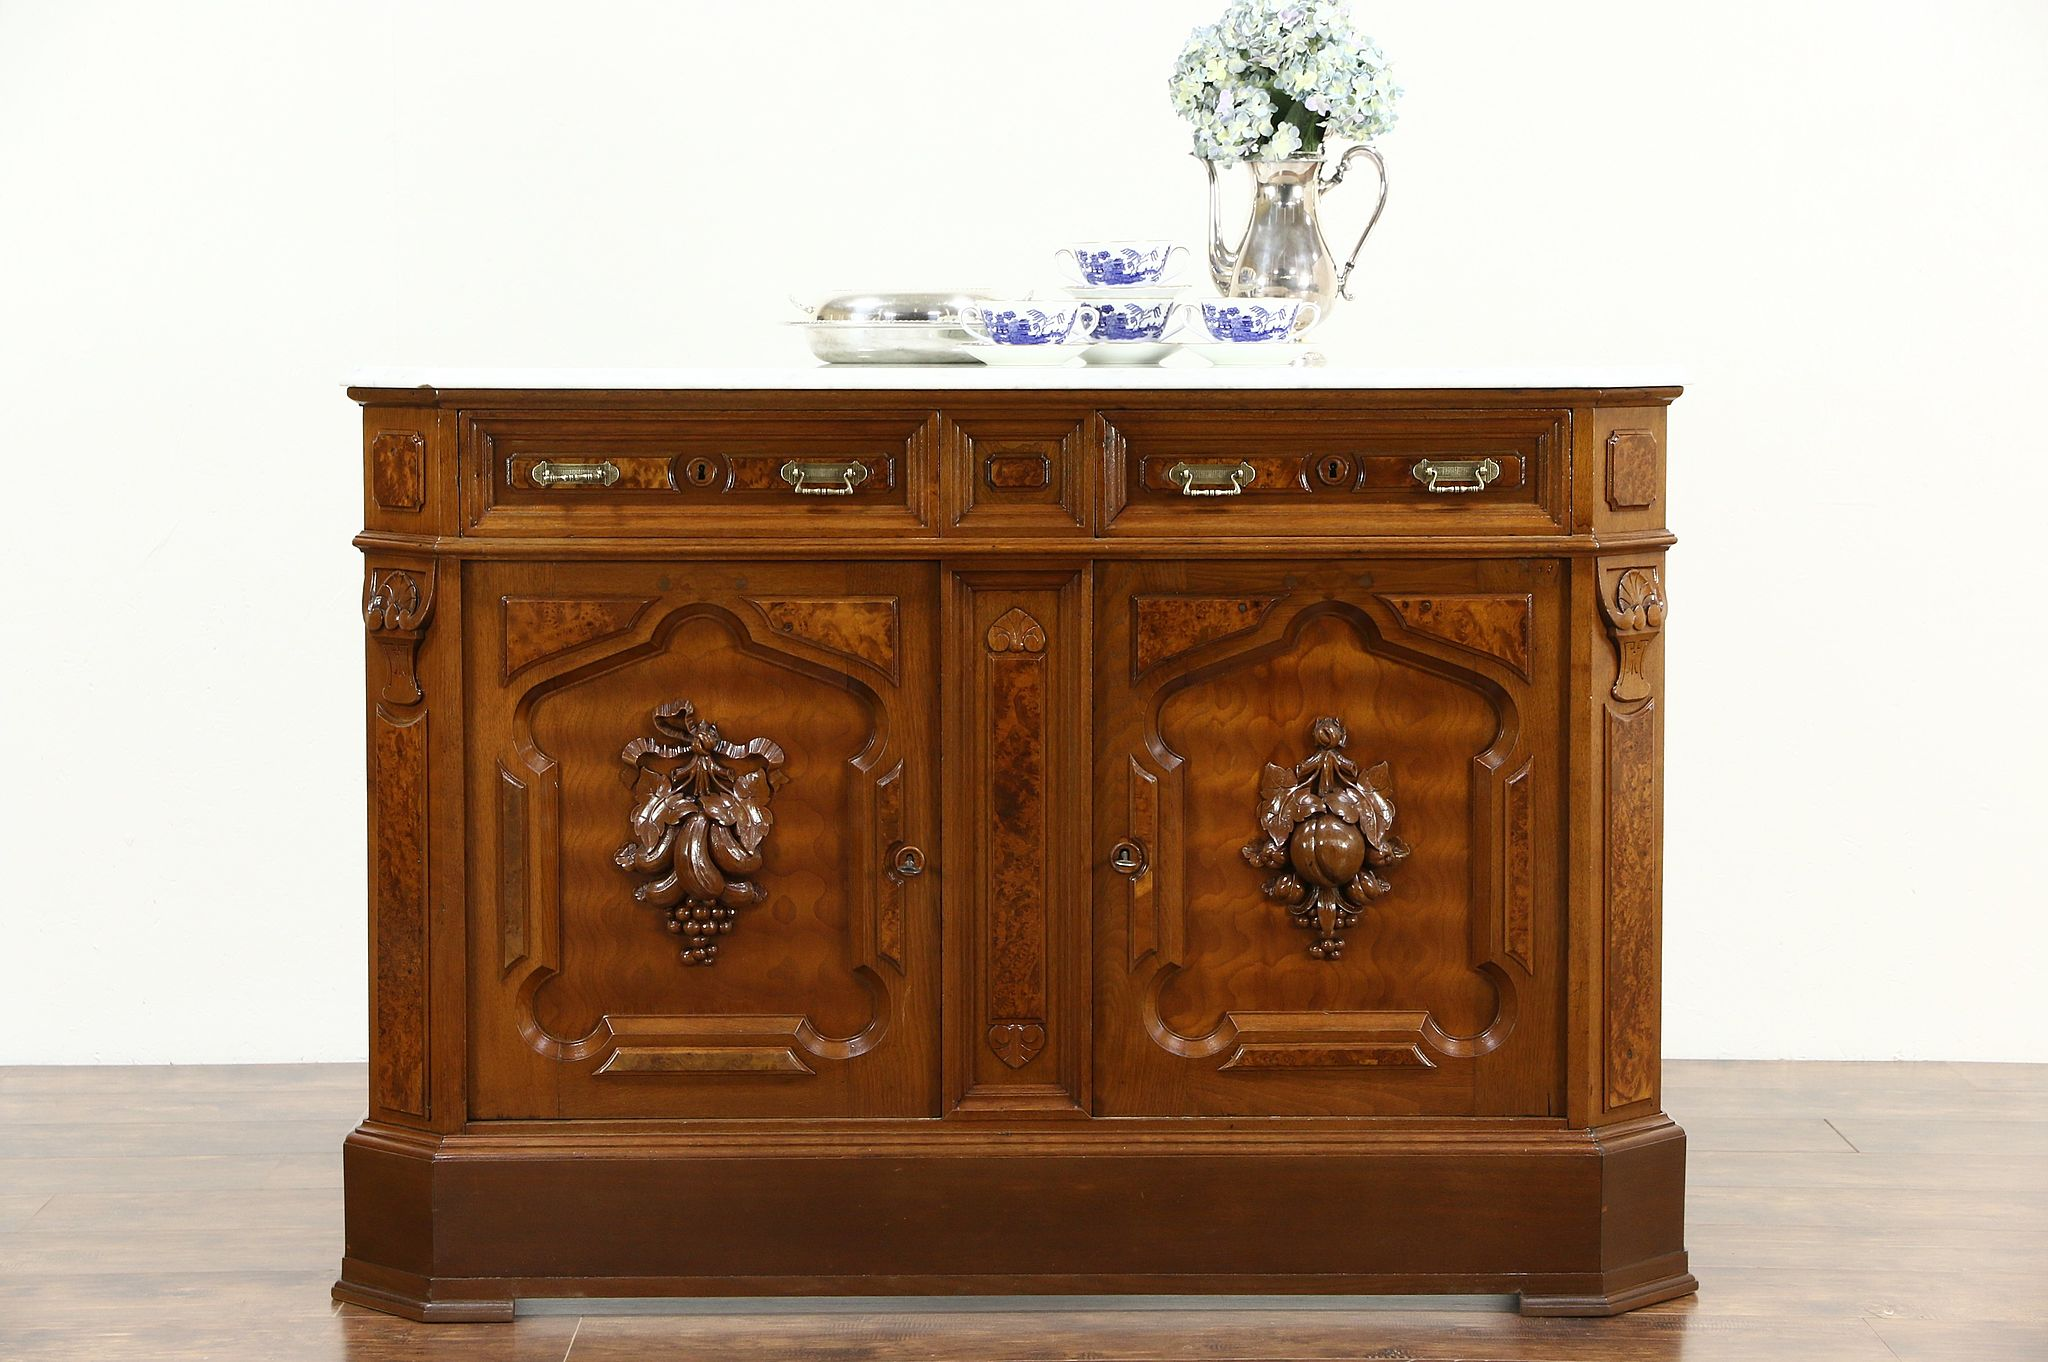 sold victorian 1880 antique marble top walnut sideboard server or rh harpgallery com marble top buffet used columbus, ohio marble top buffet used columbus, ohio